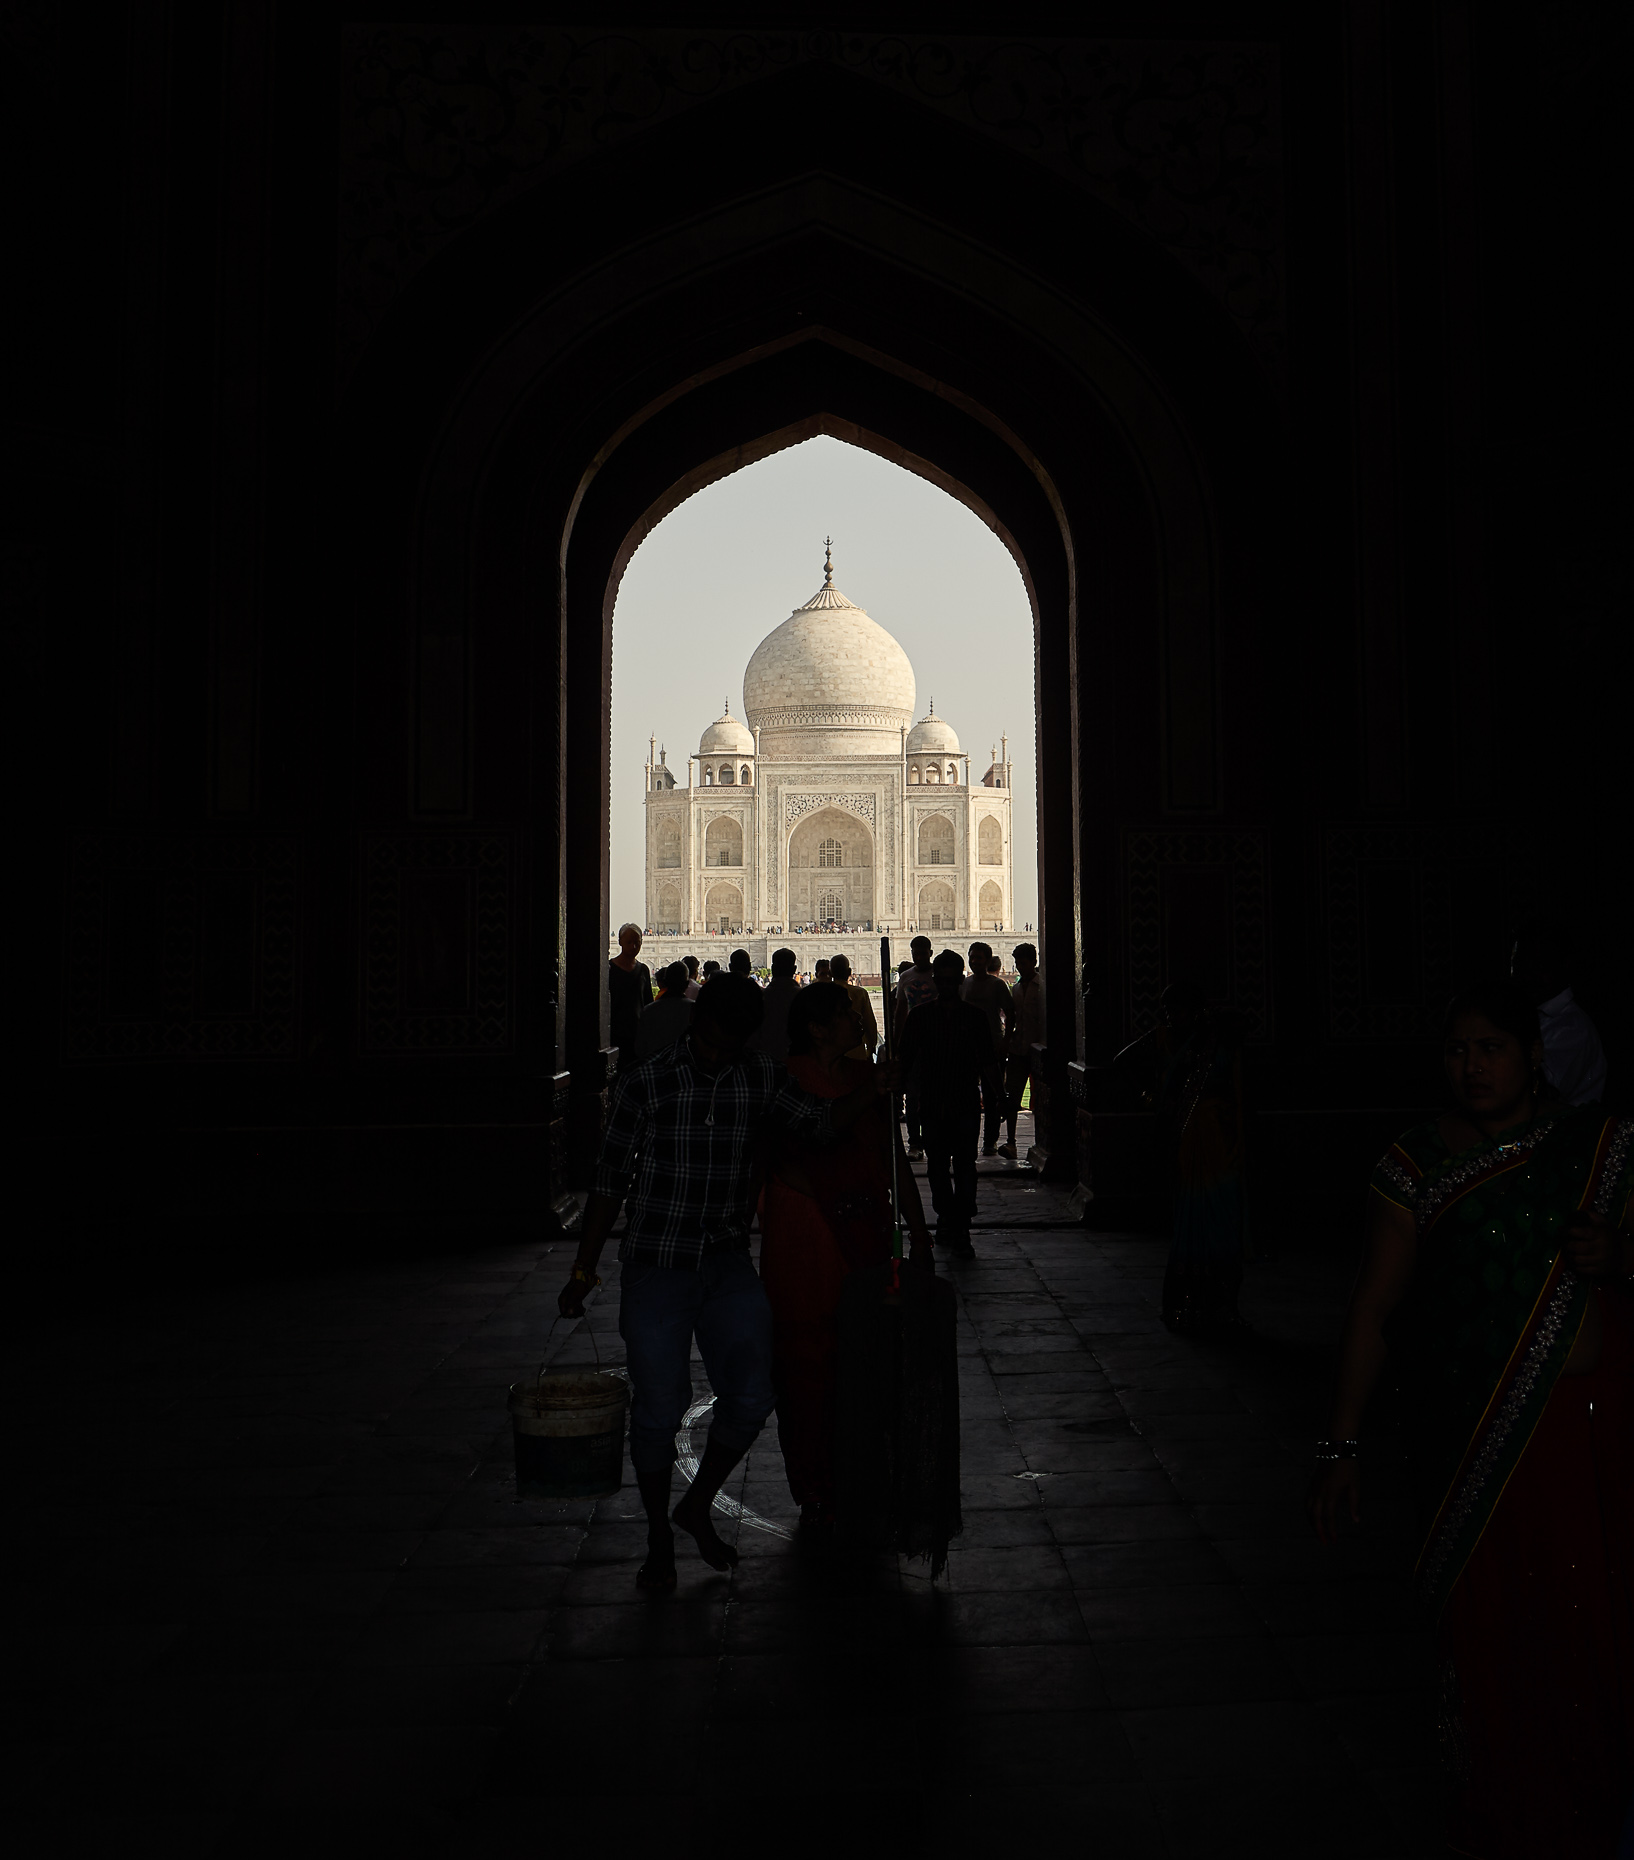 Personal_India_Agra_L10601191-30